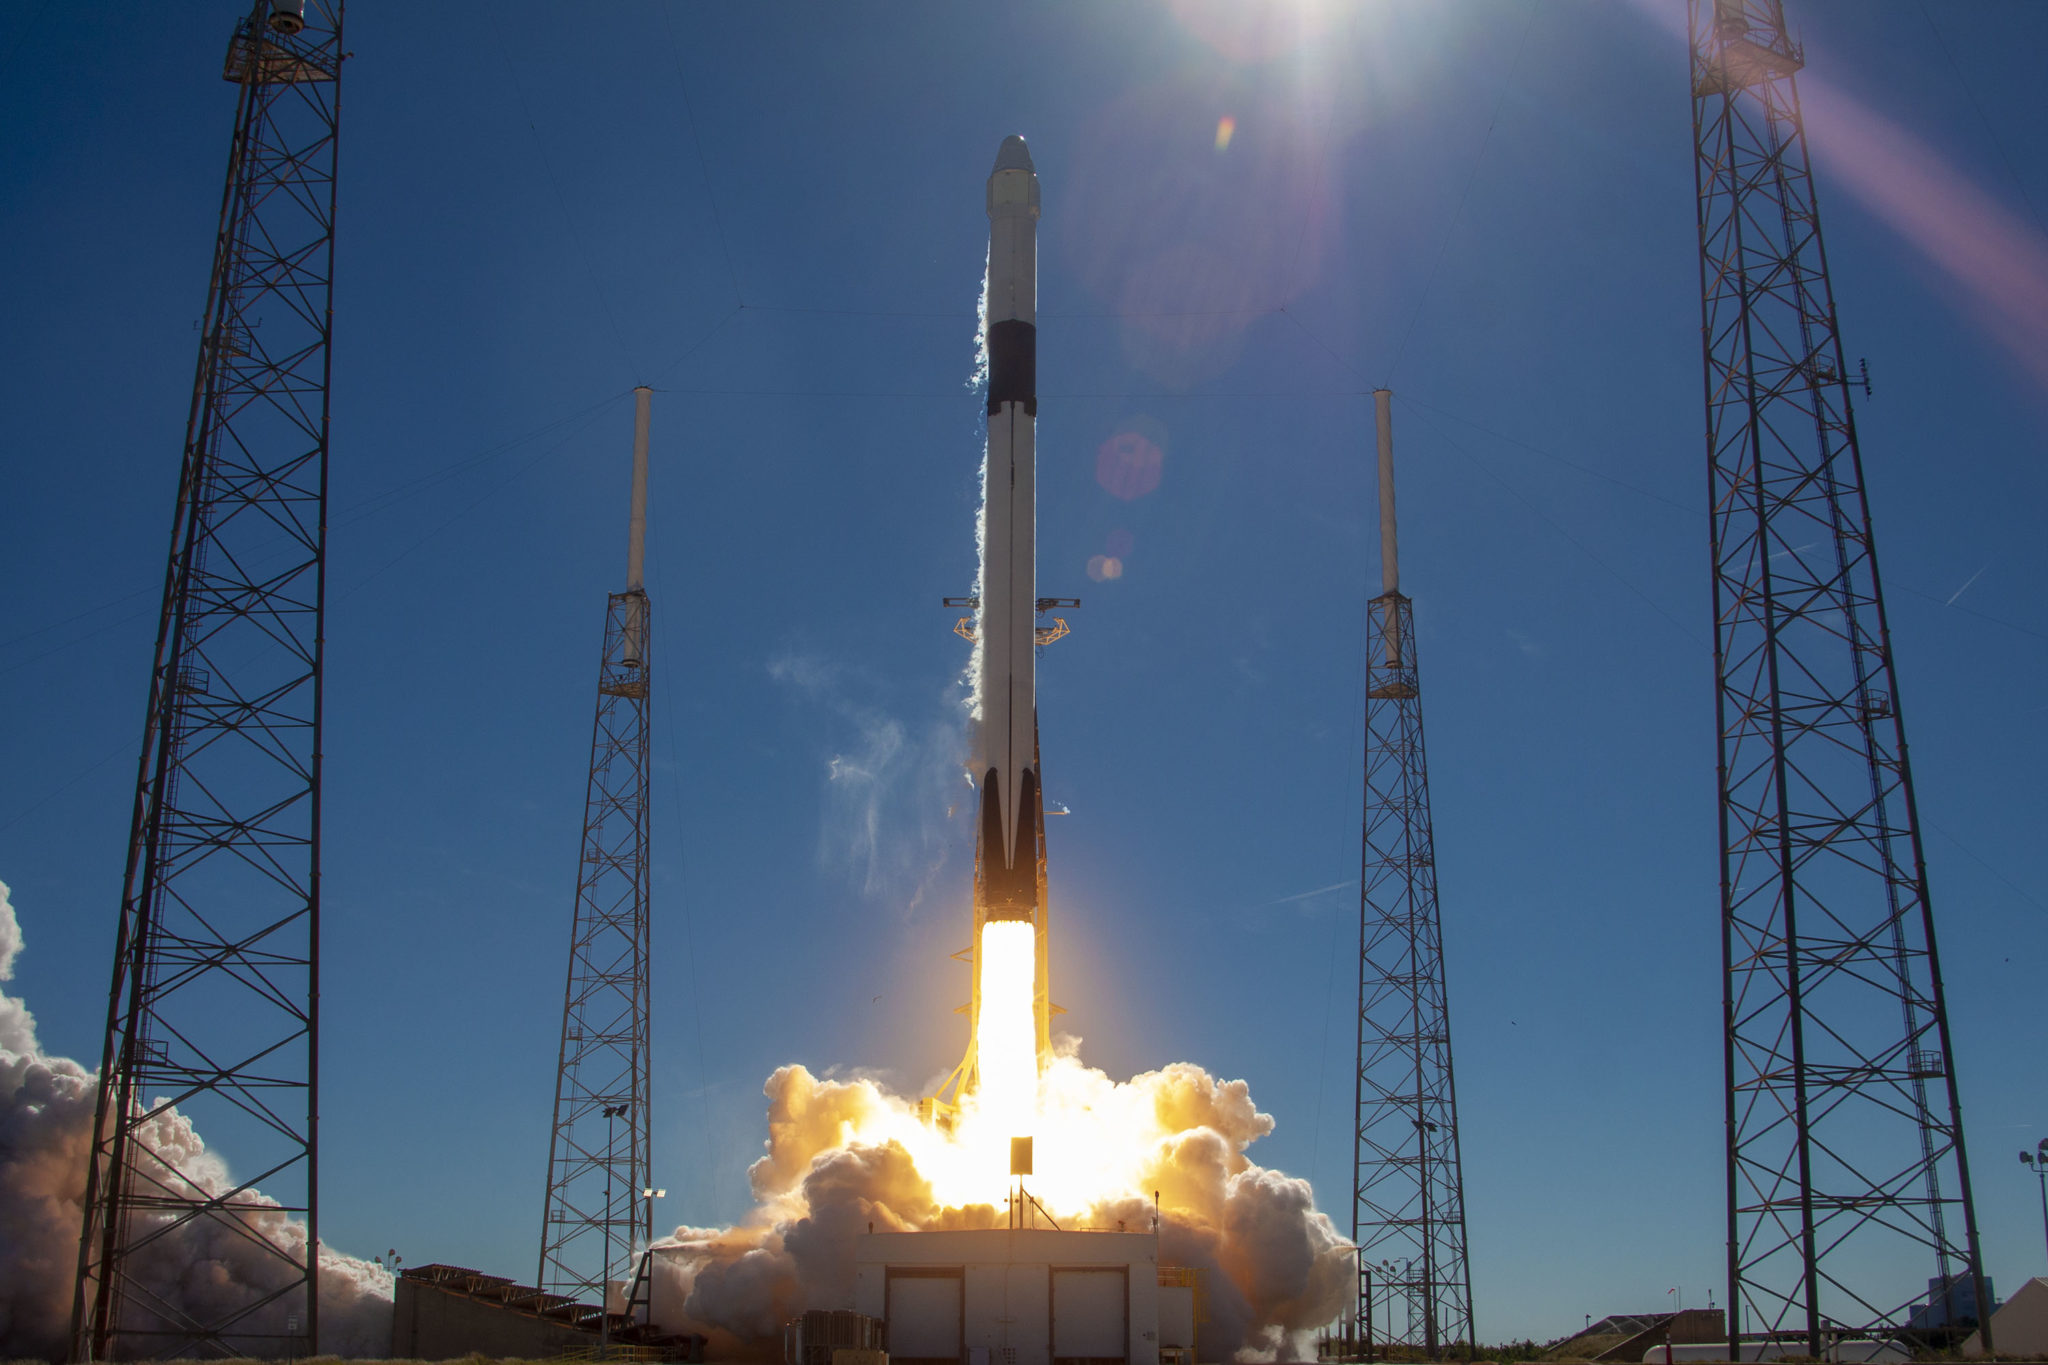 ISS resupply mission launches from Virginia's Eastern Shore